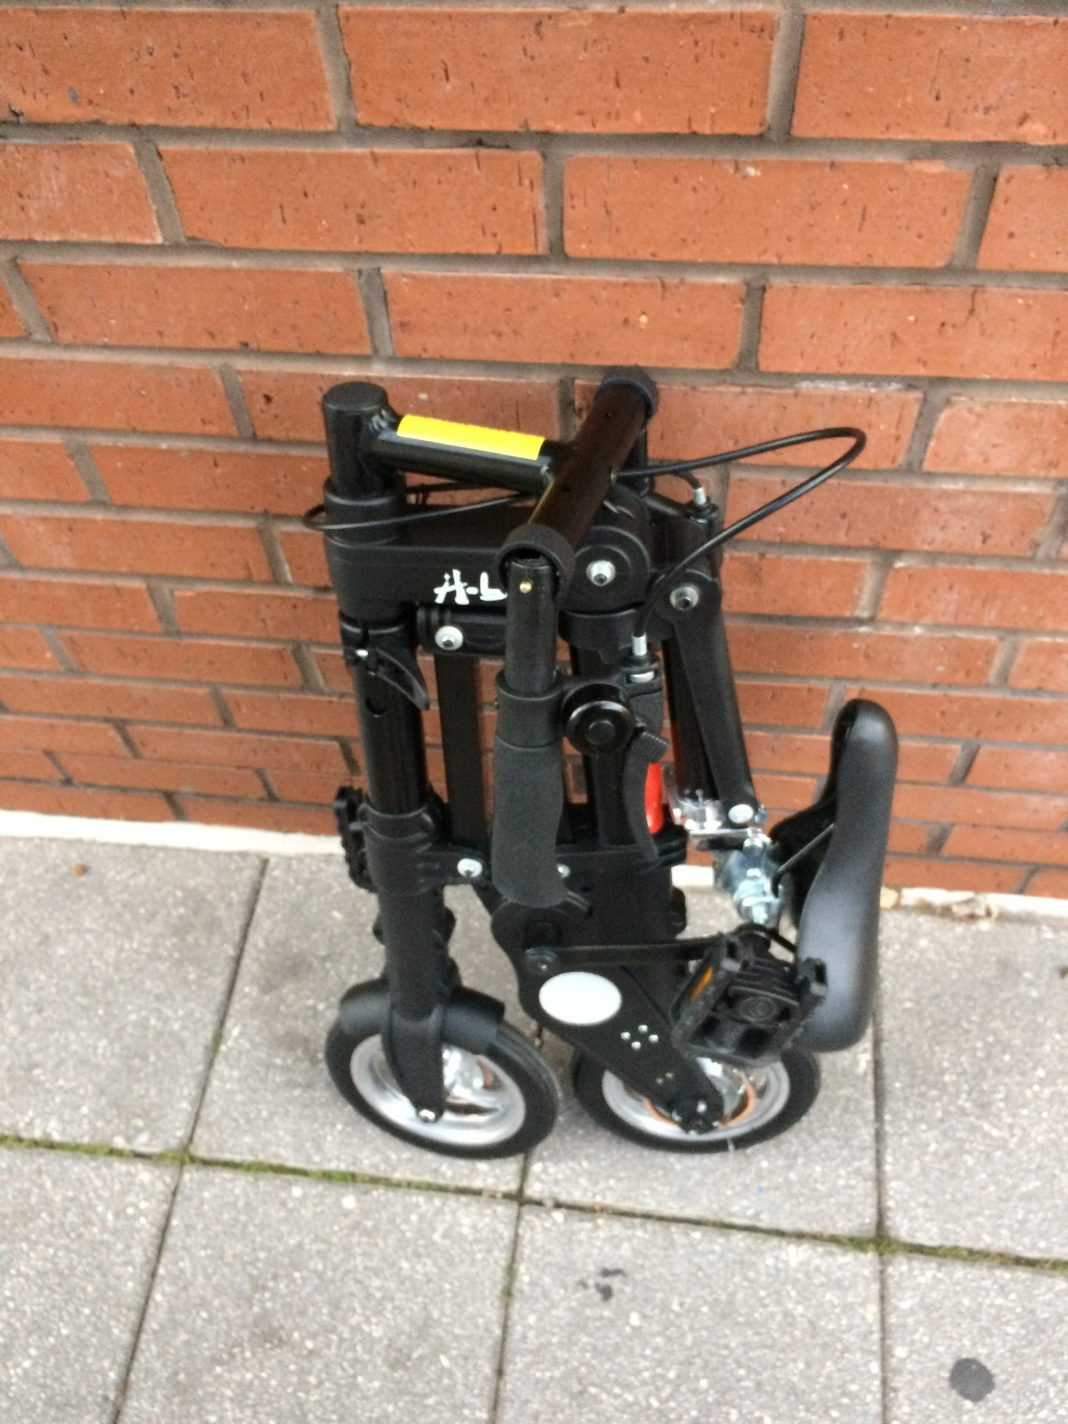 The smallest folding bike in the world.